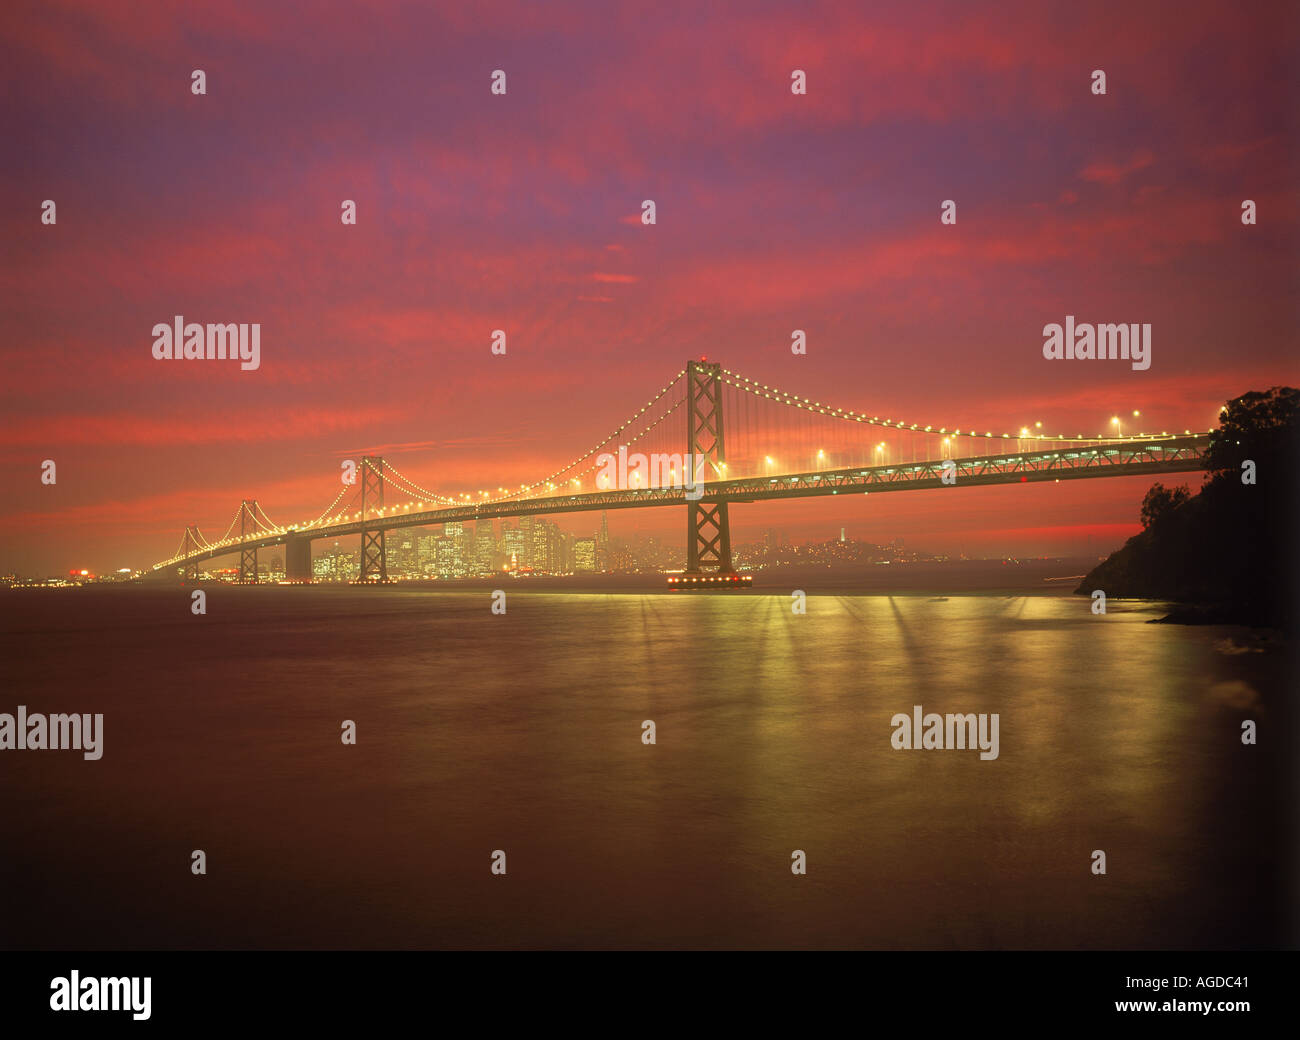 Oakland Bay Bridge under colorful sunset skies across San Francisco Bay - Stock Image